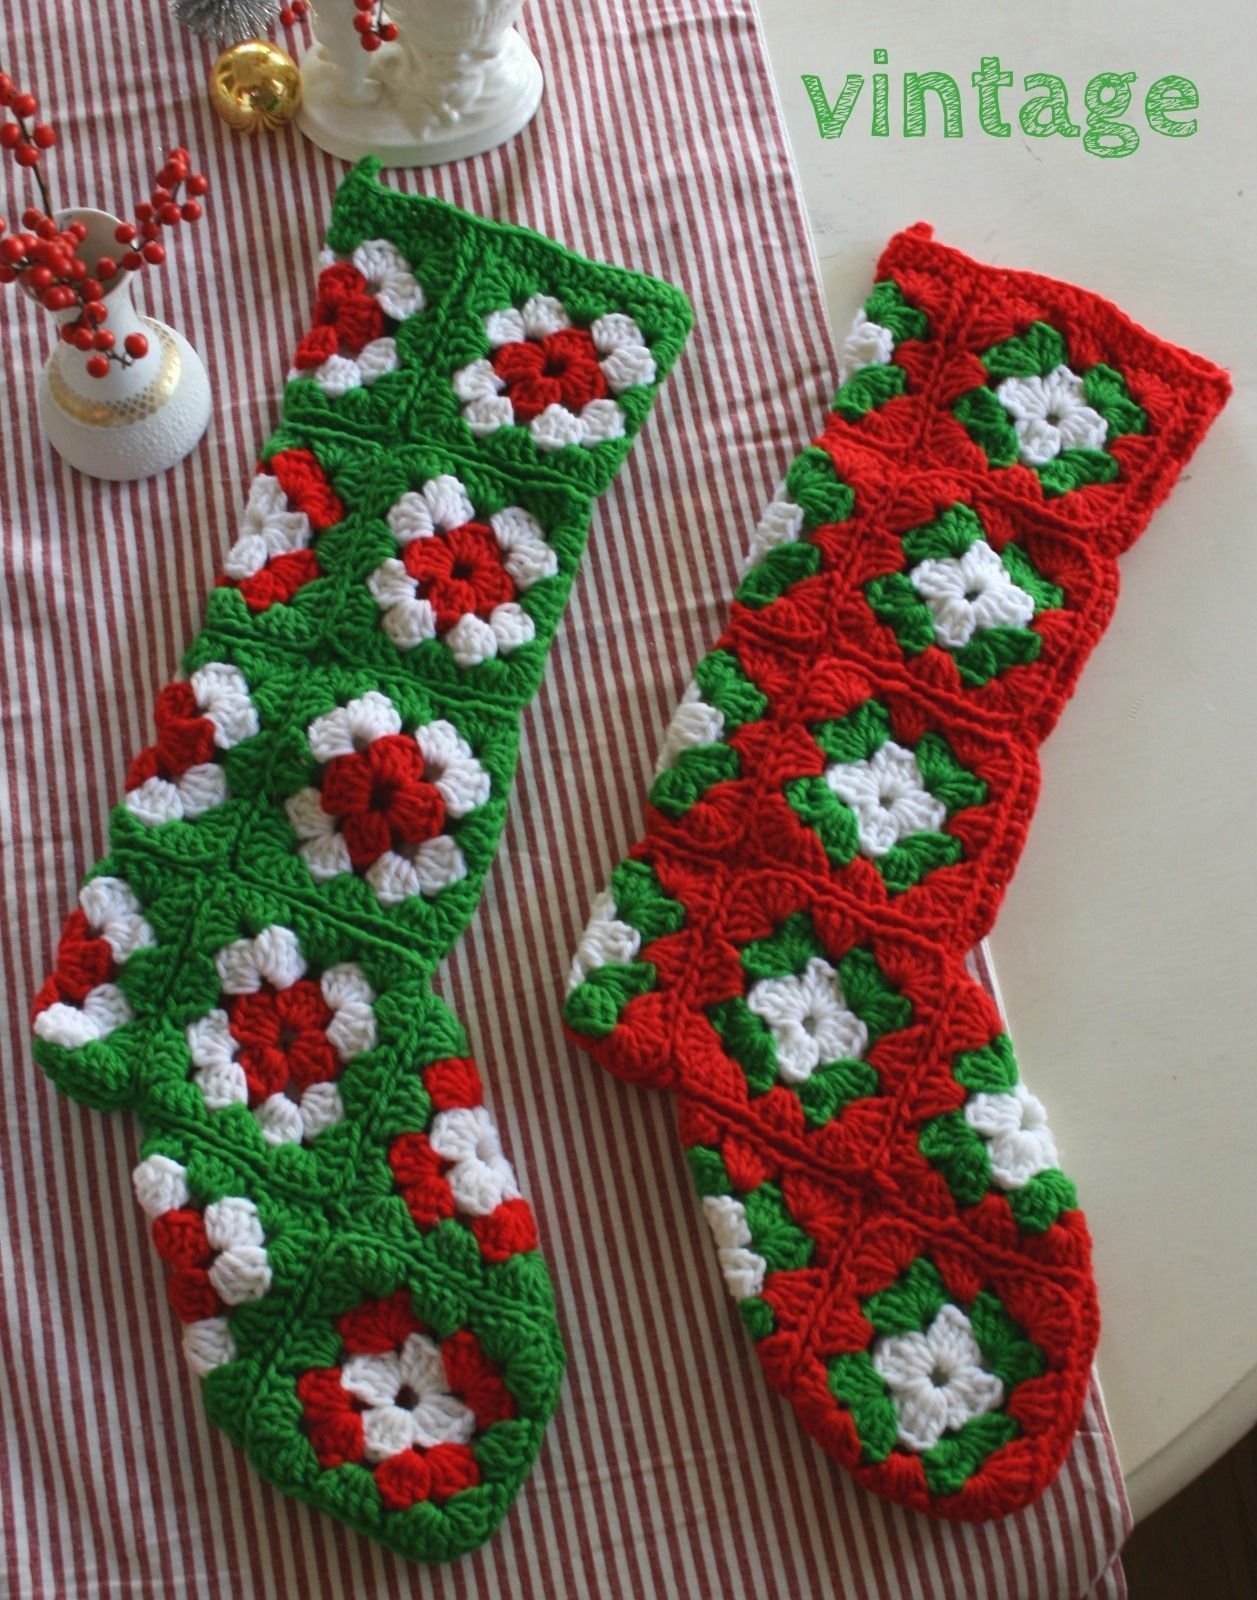 2 matching vintage hand crocheted Christmas stockings made with ...